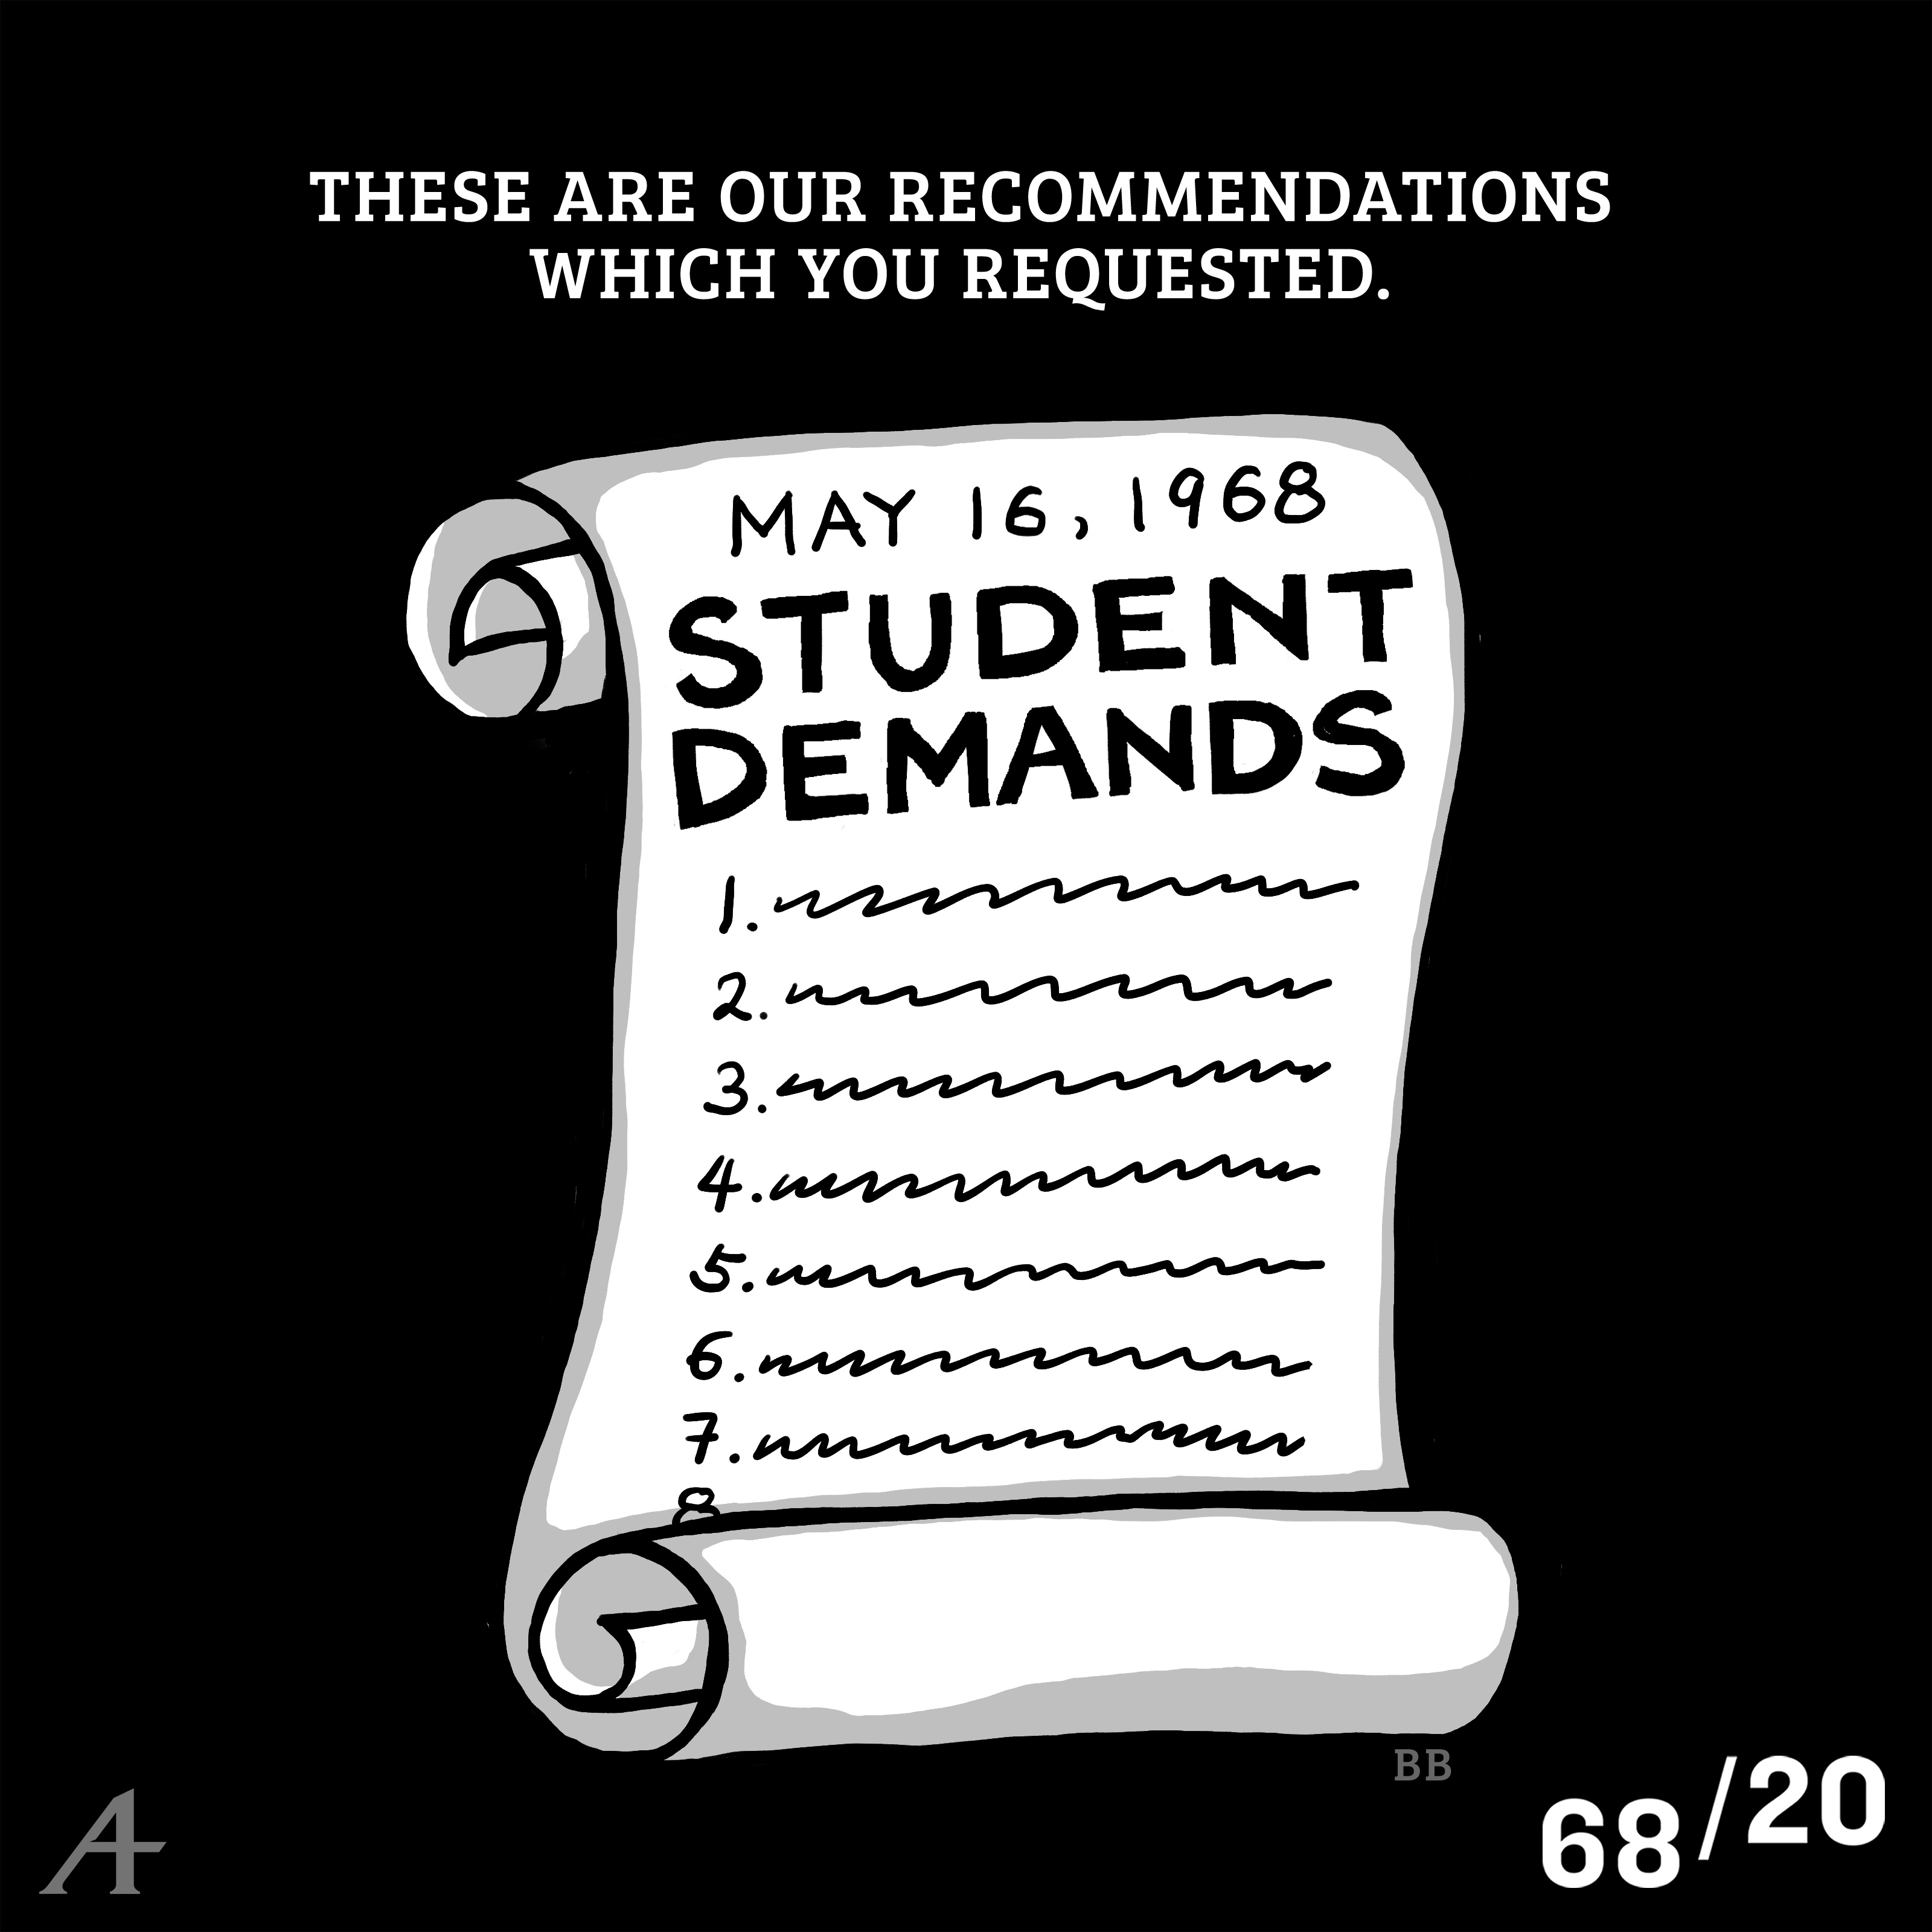 Student demand list sketch (1968)